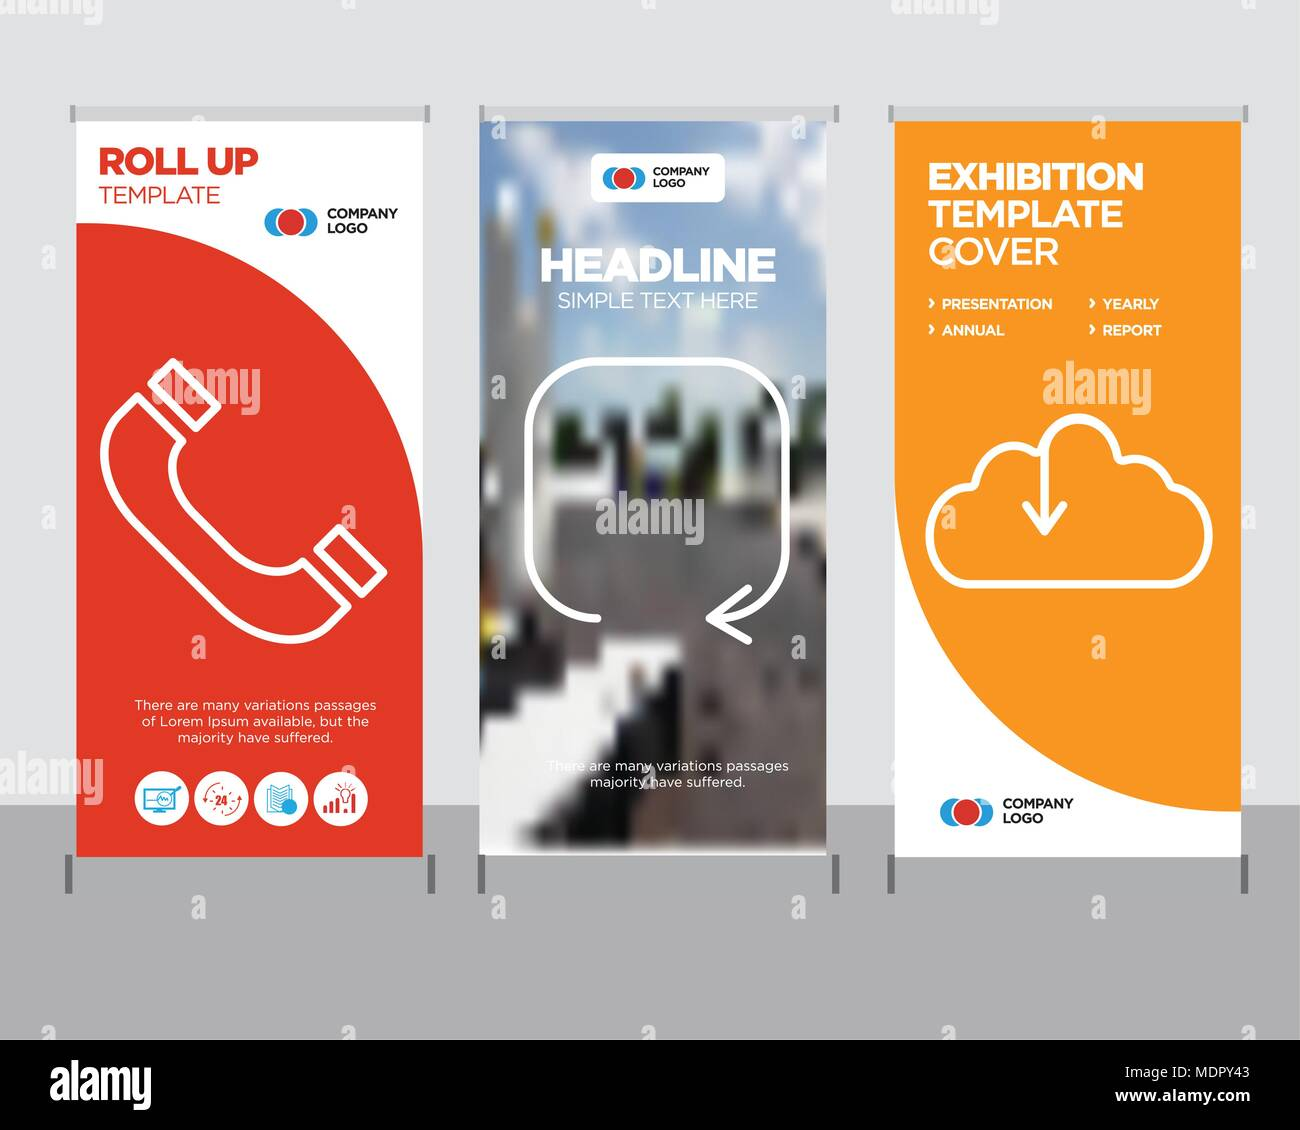 download from the cloud modern business roll up banner design